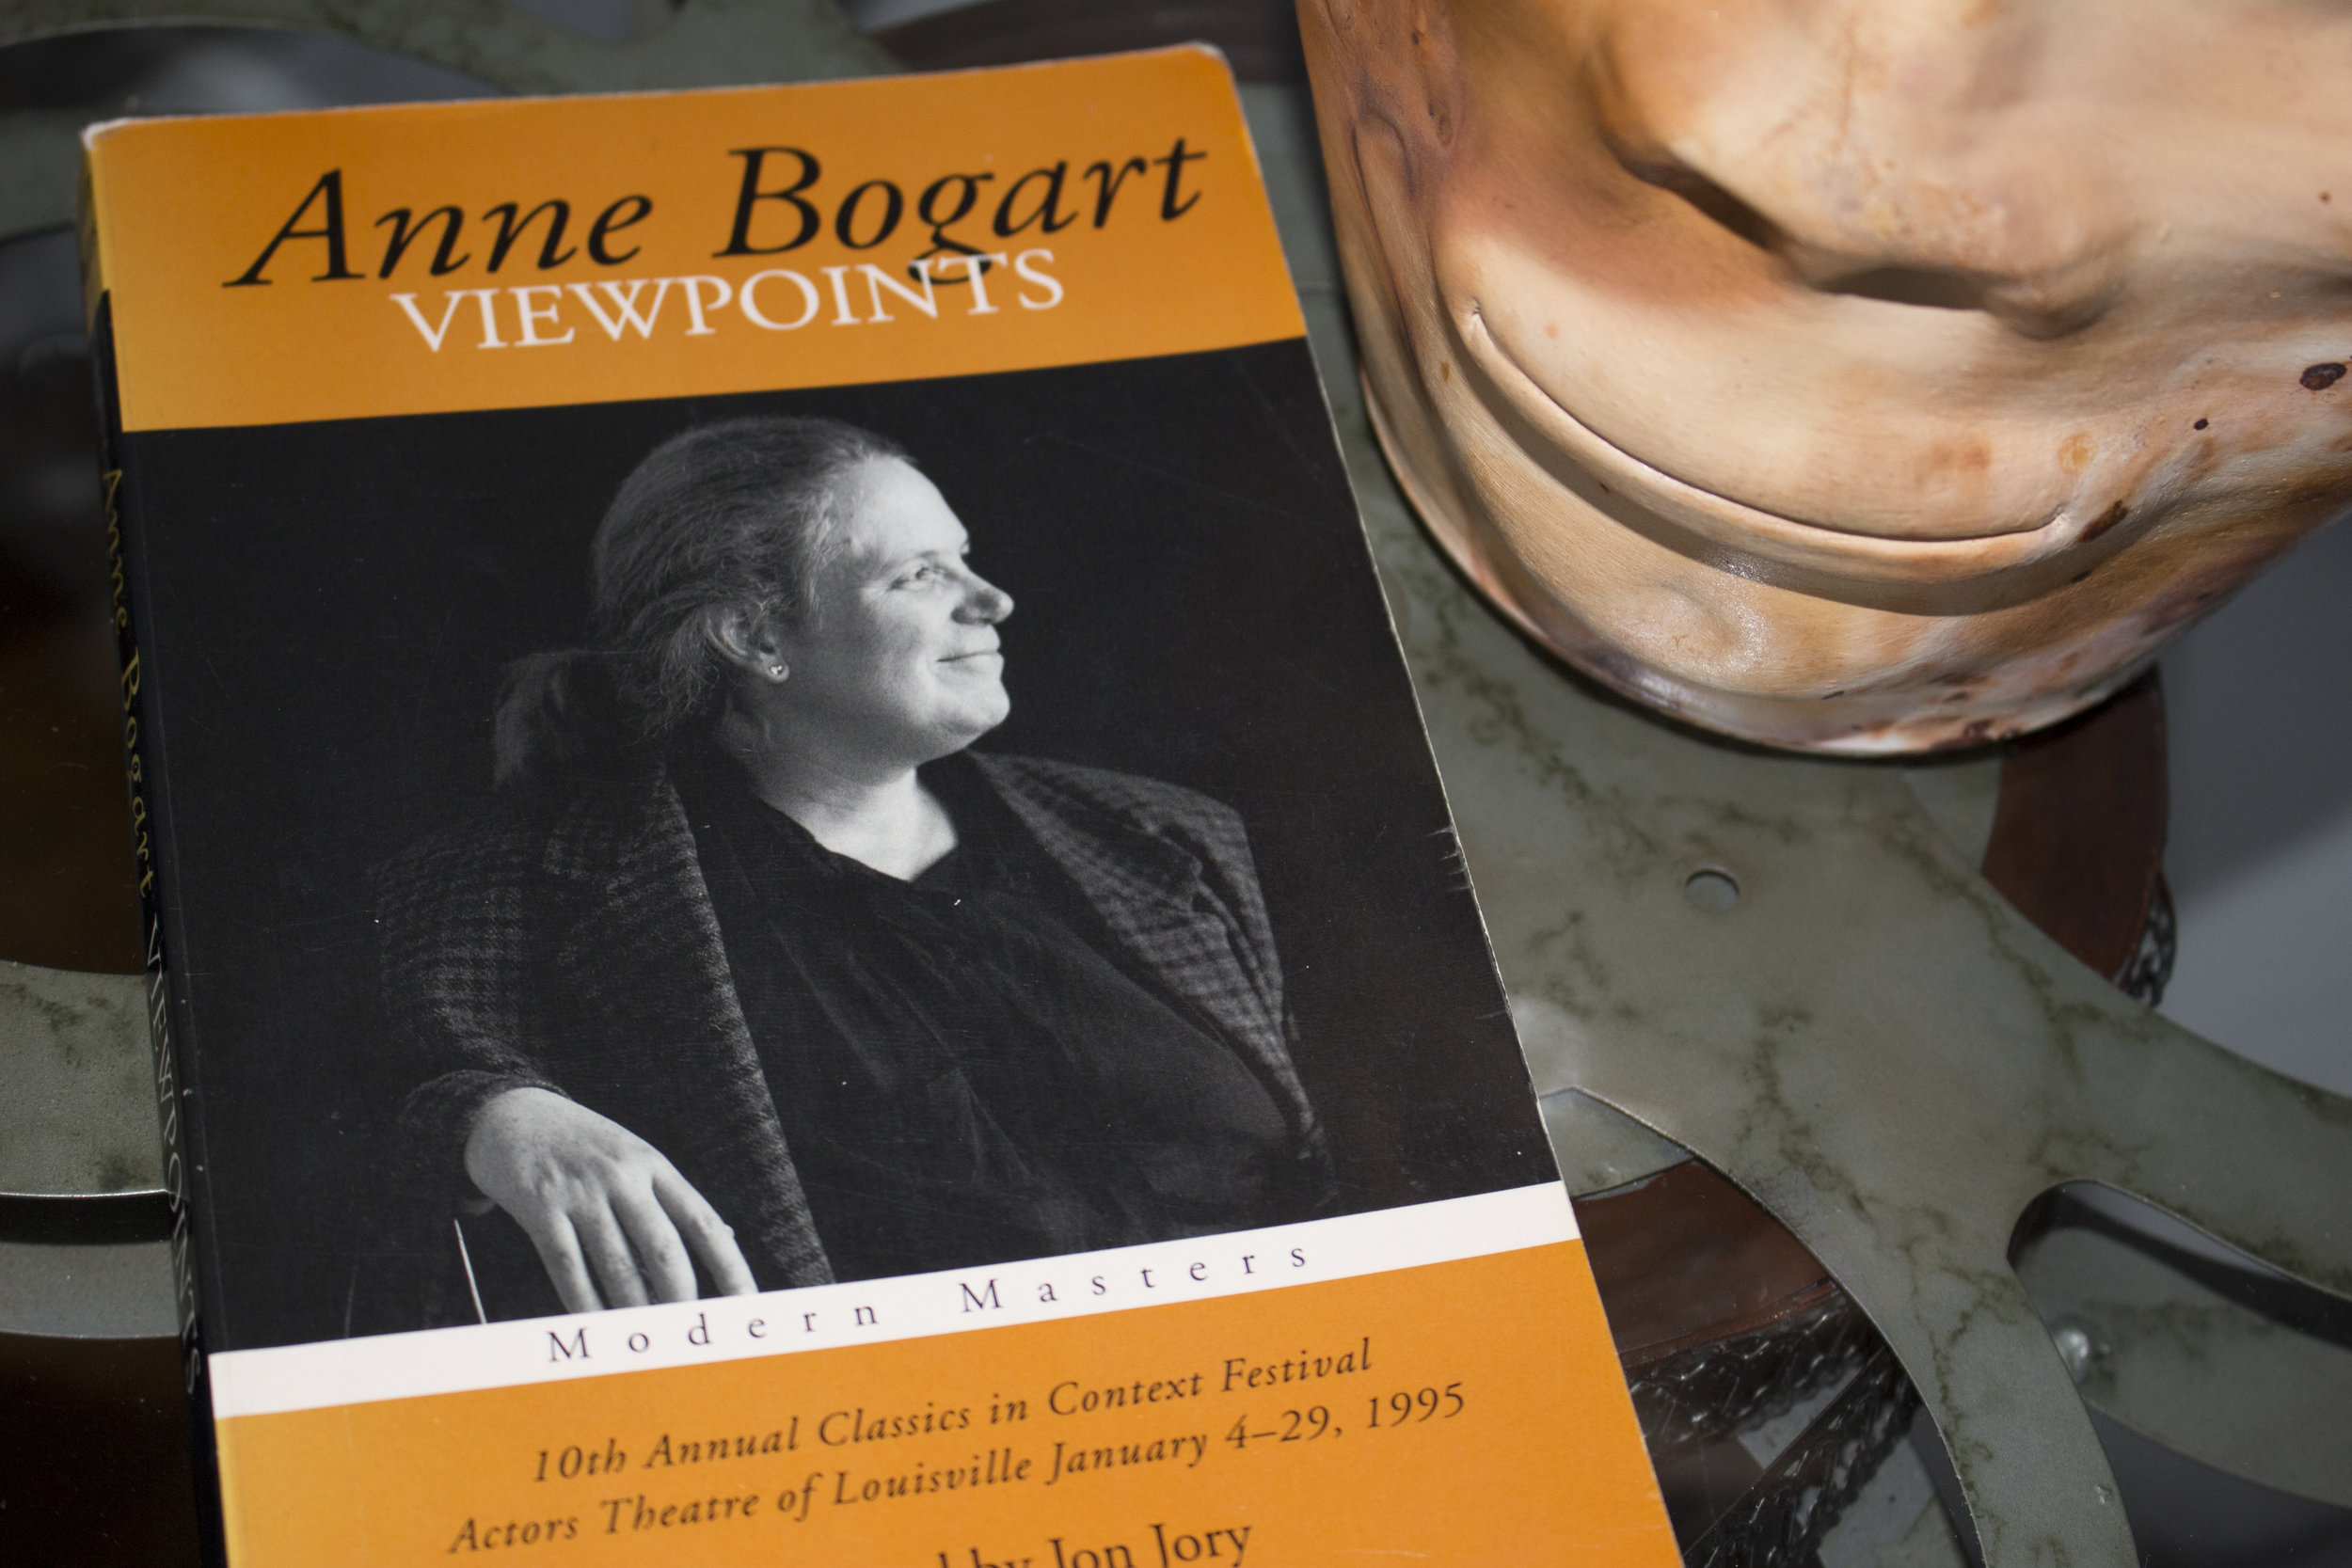 Viewpoints - By Anne Bogart